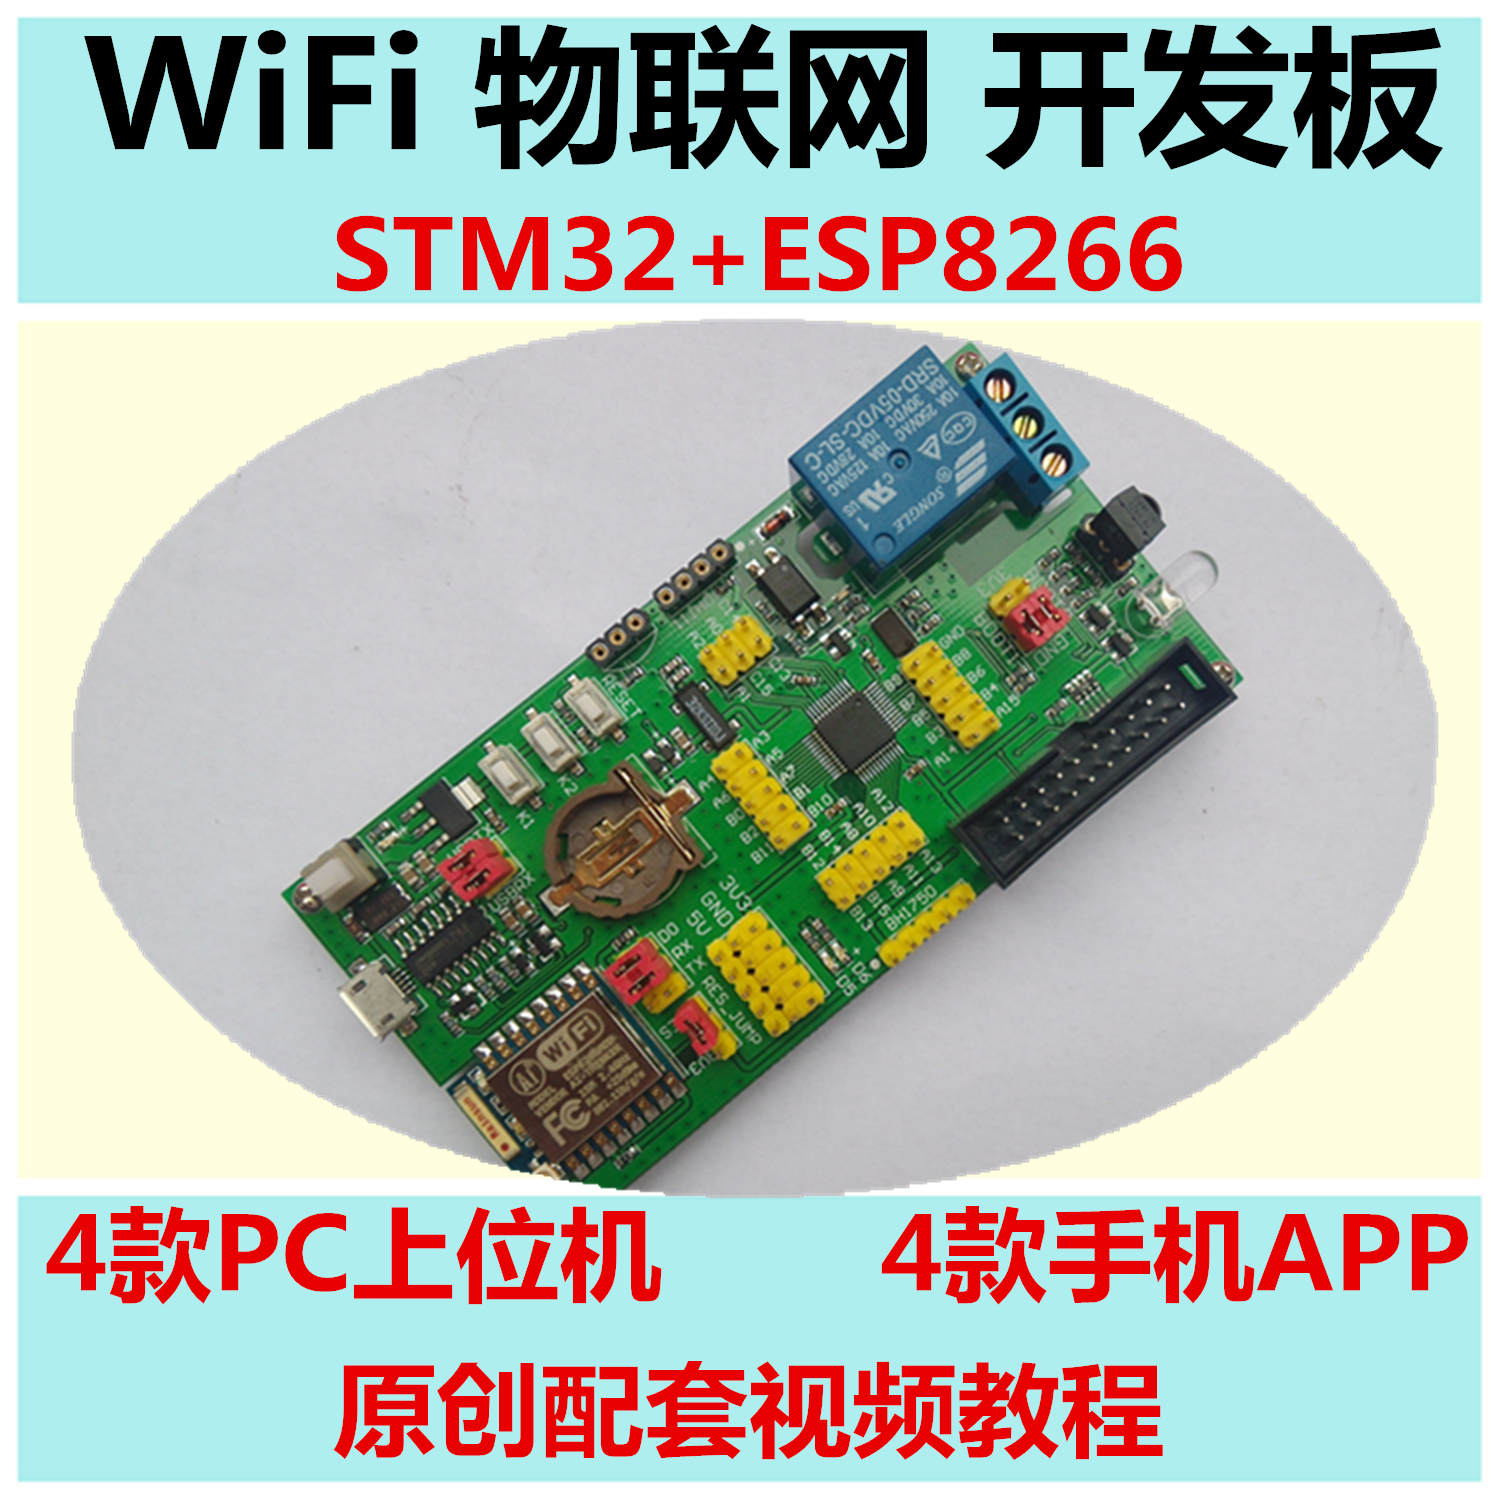 Internet of things WIFI development board remote control cloud server STM32 development board ESP8266 lua wifi nodemcu internet of things development board based on cp2102 esp8266